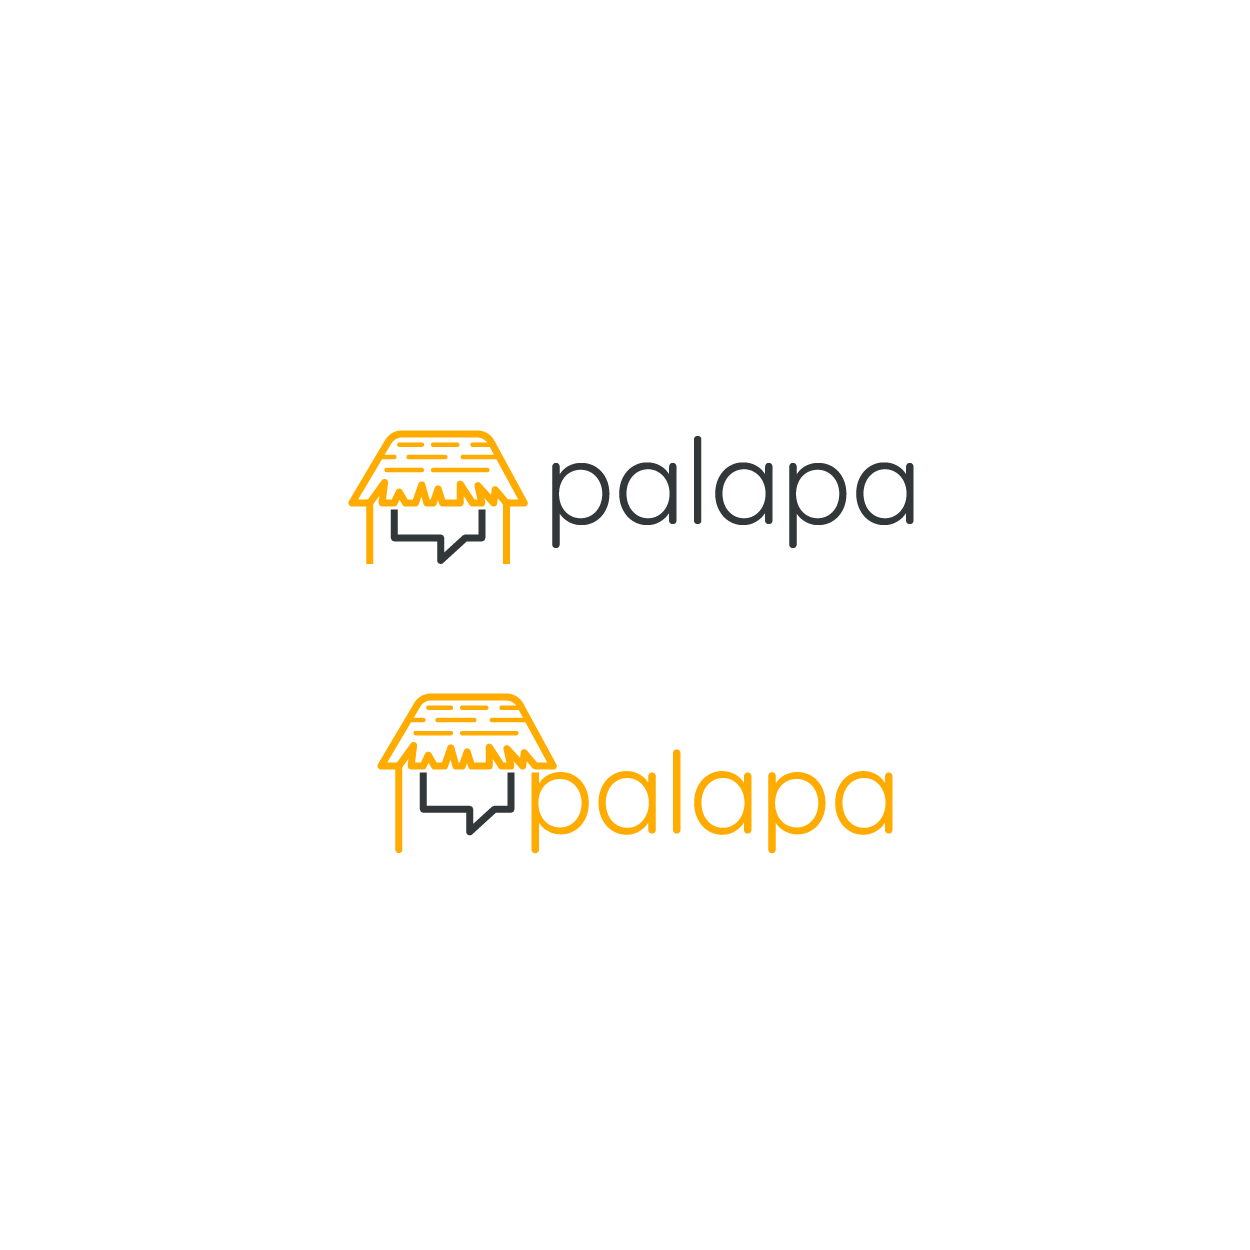 Design a logo for Palapa, the hot new messaging app